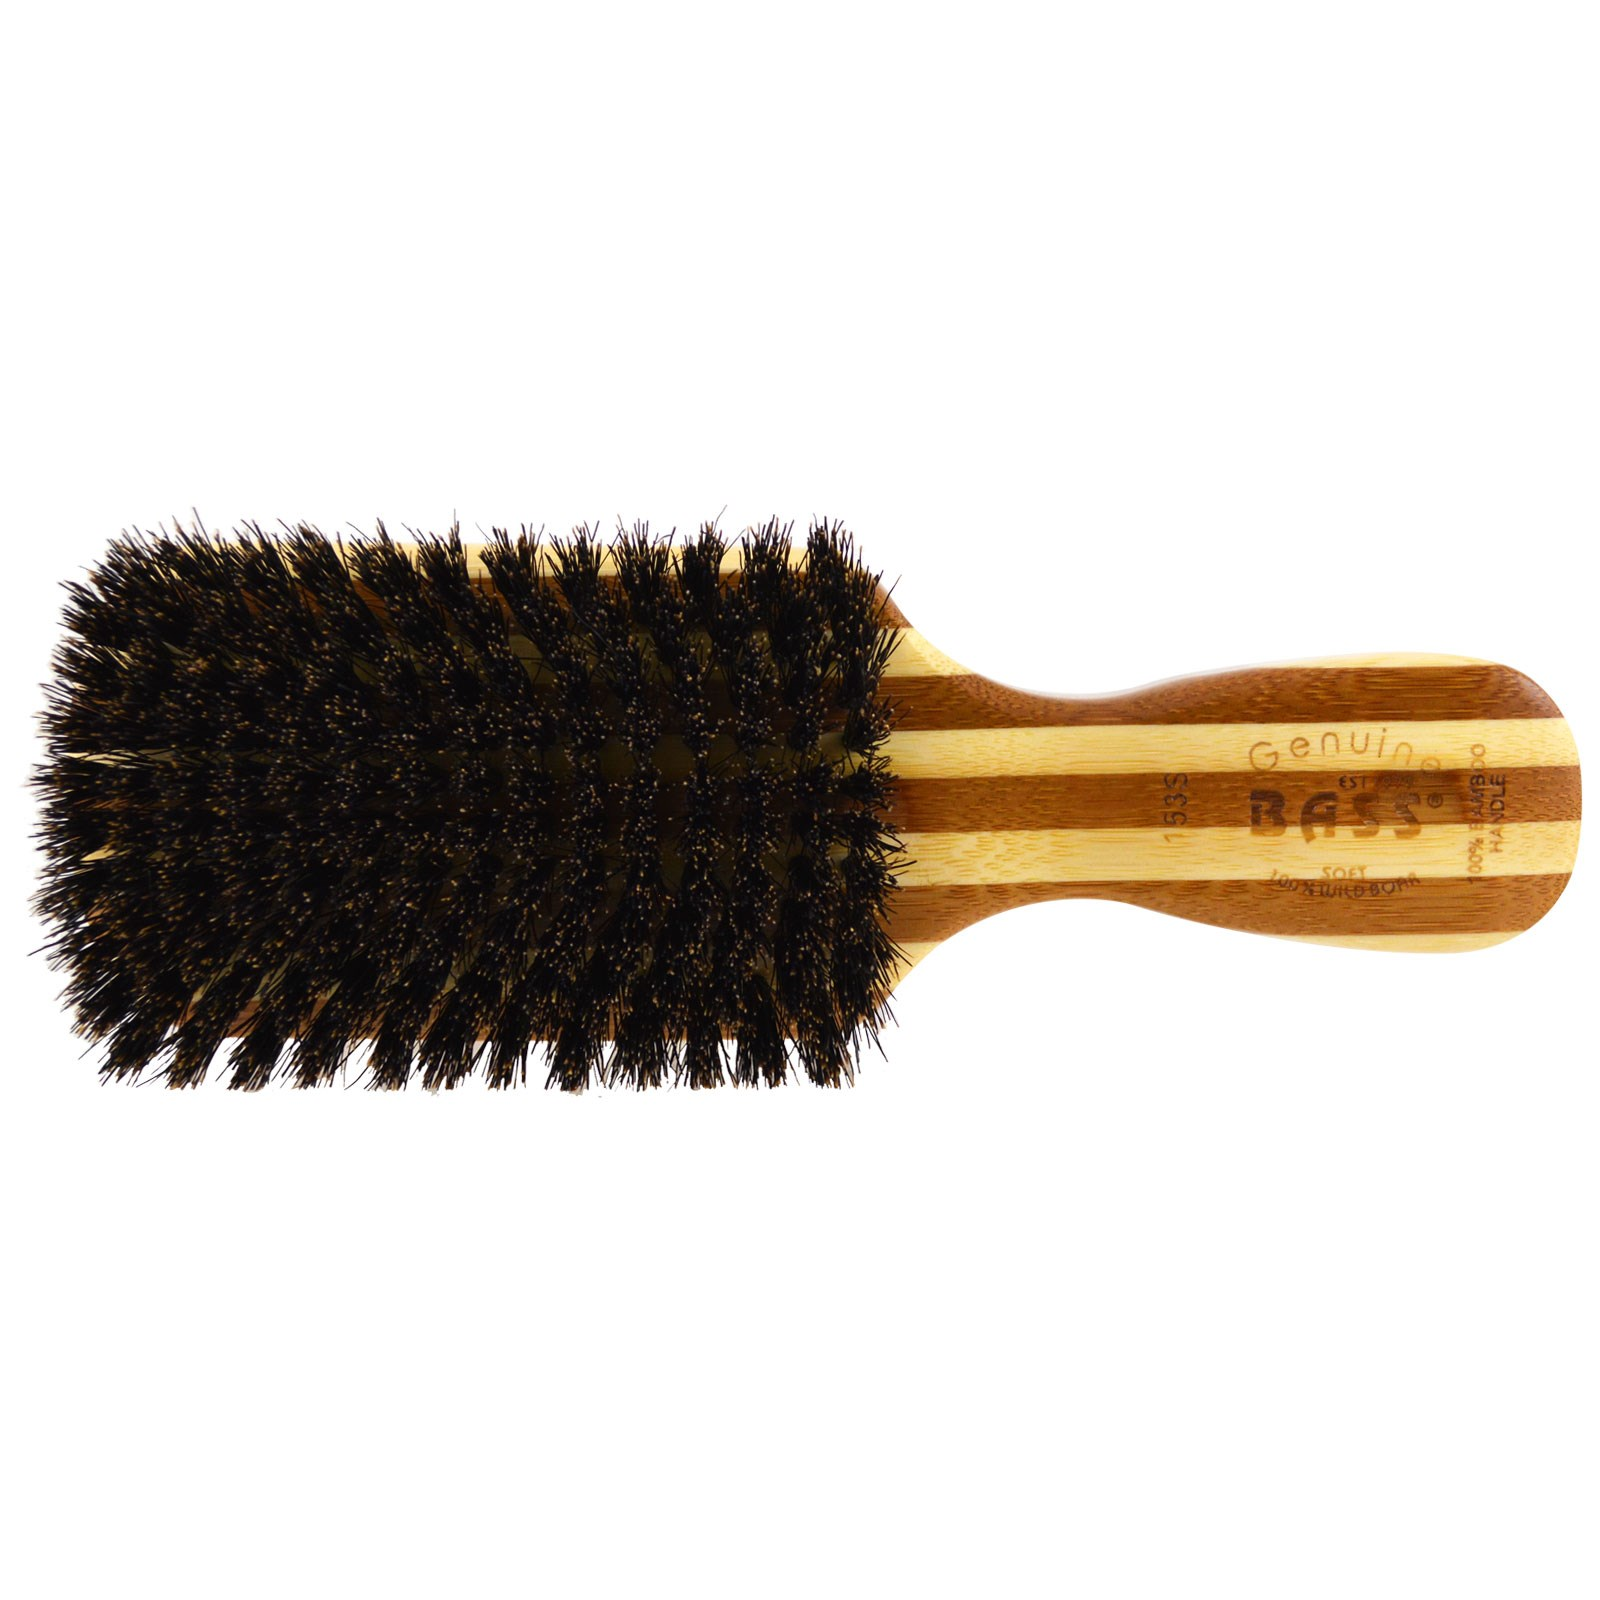 Old fashioned hair brushes 92